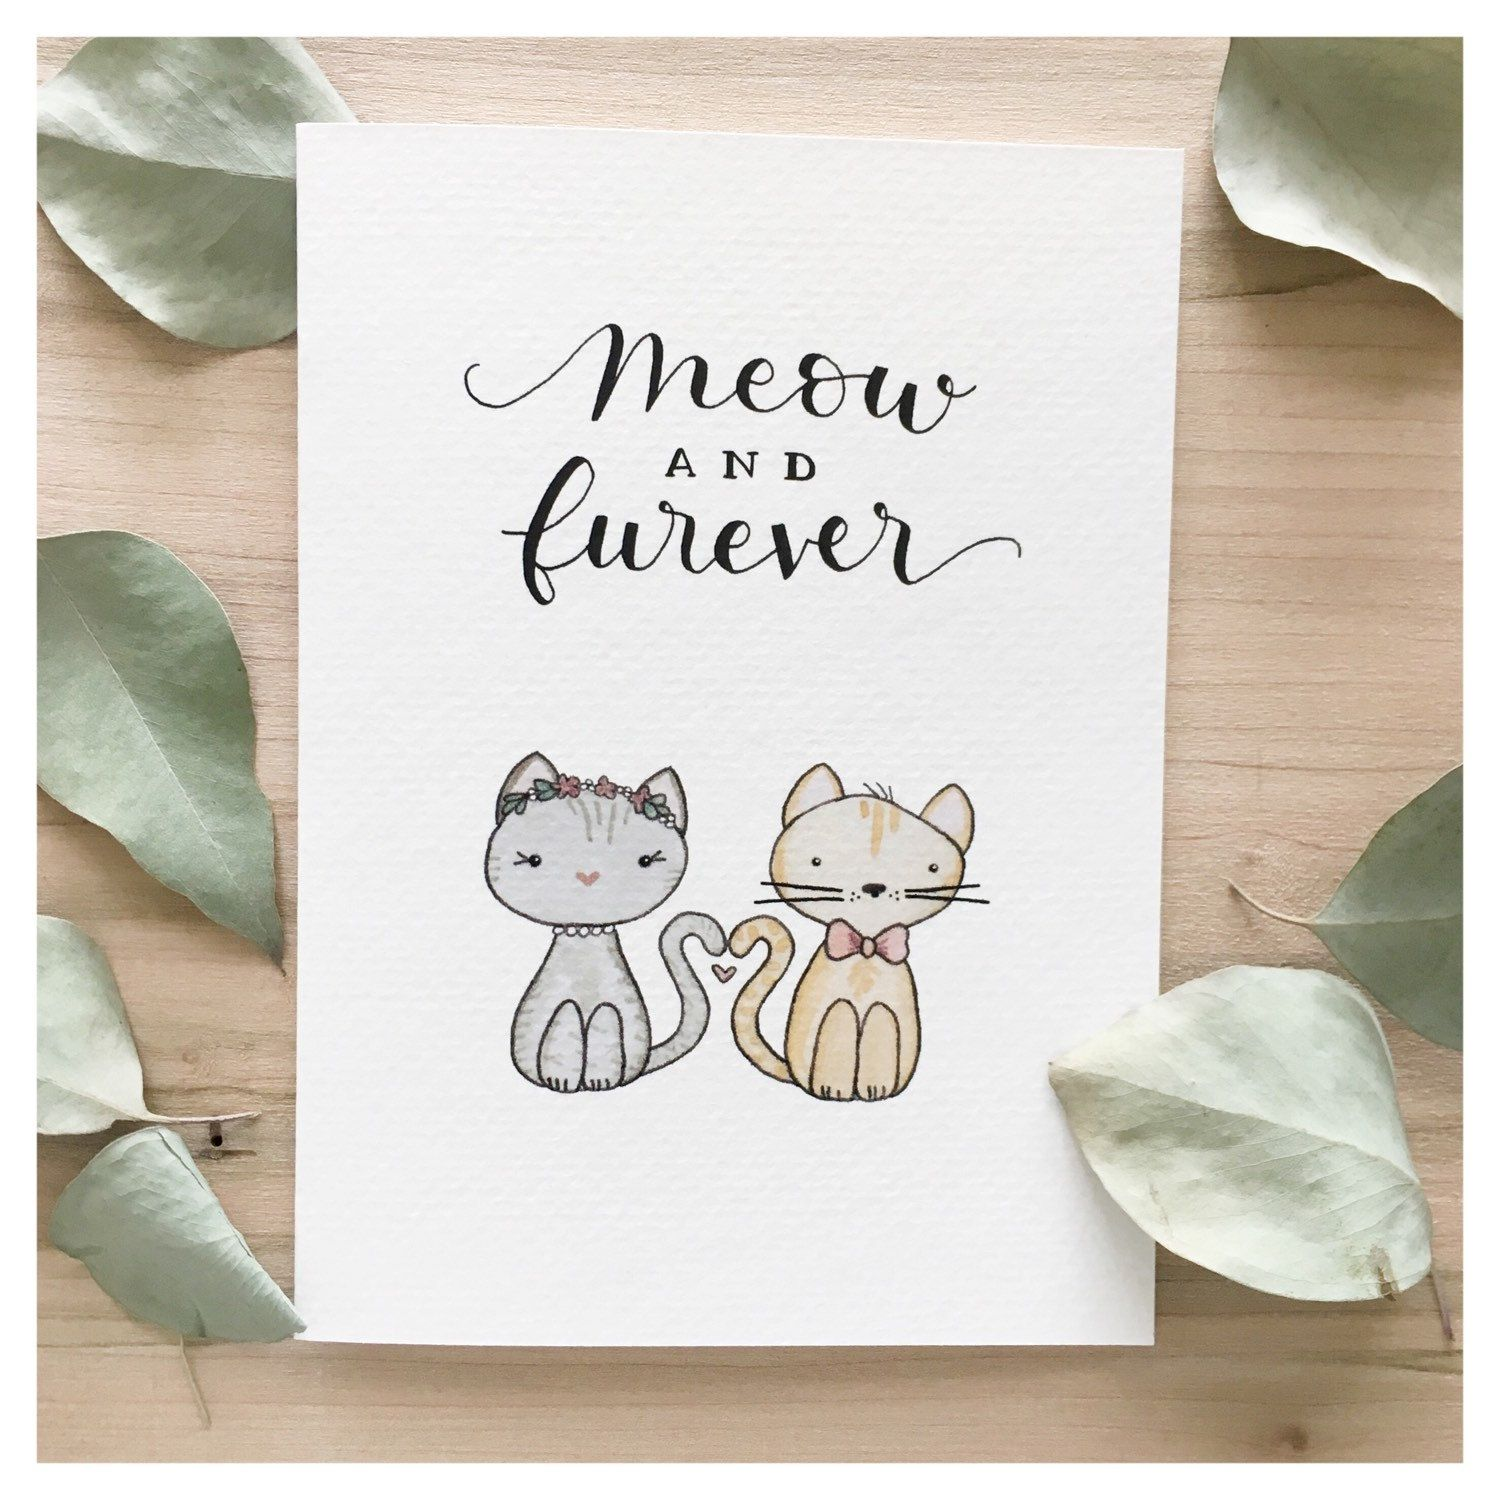 Meow And Furever // Wedding Card, Greeting Card, Card For